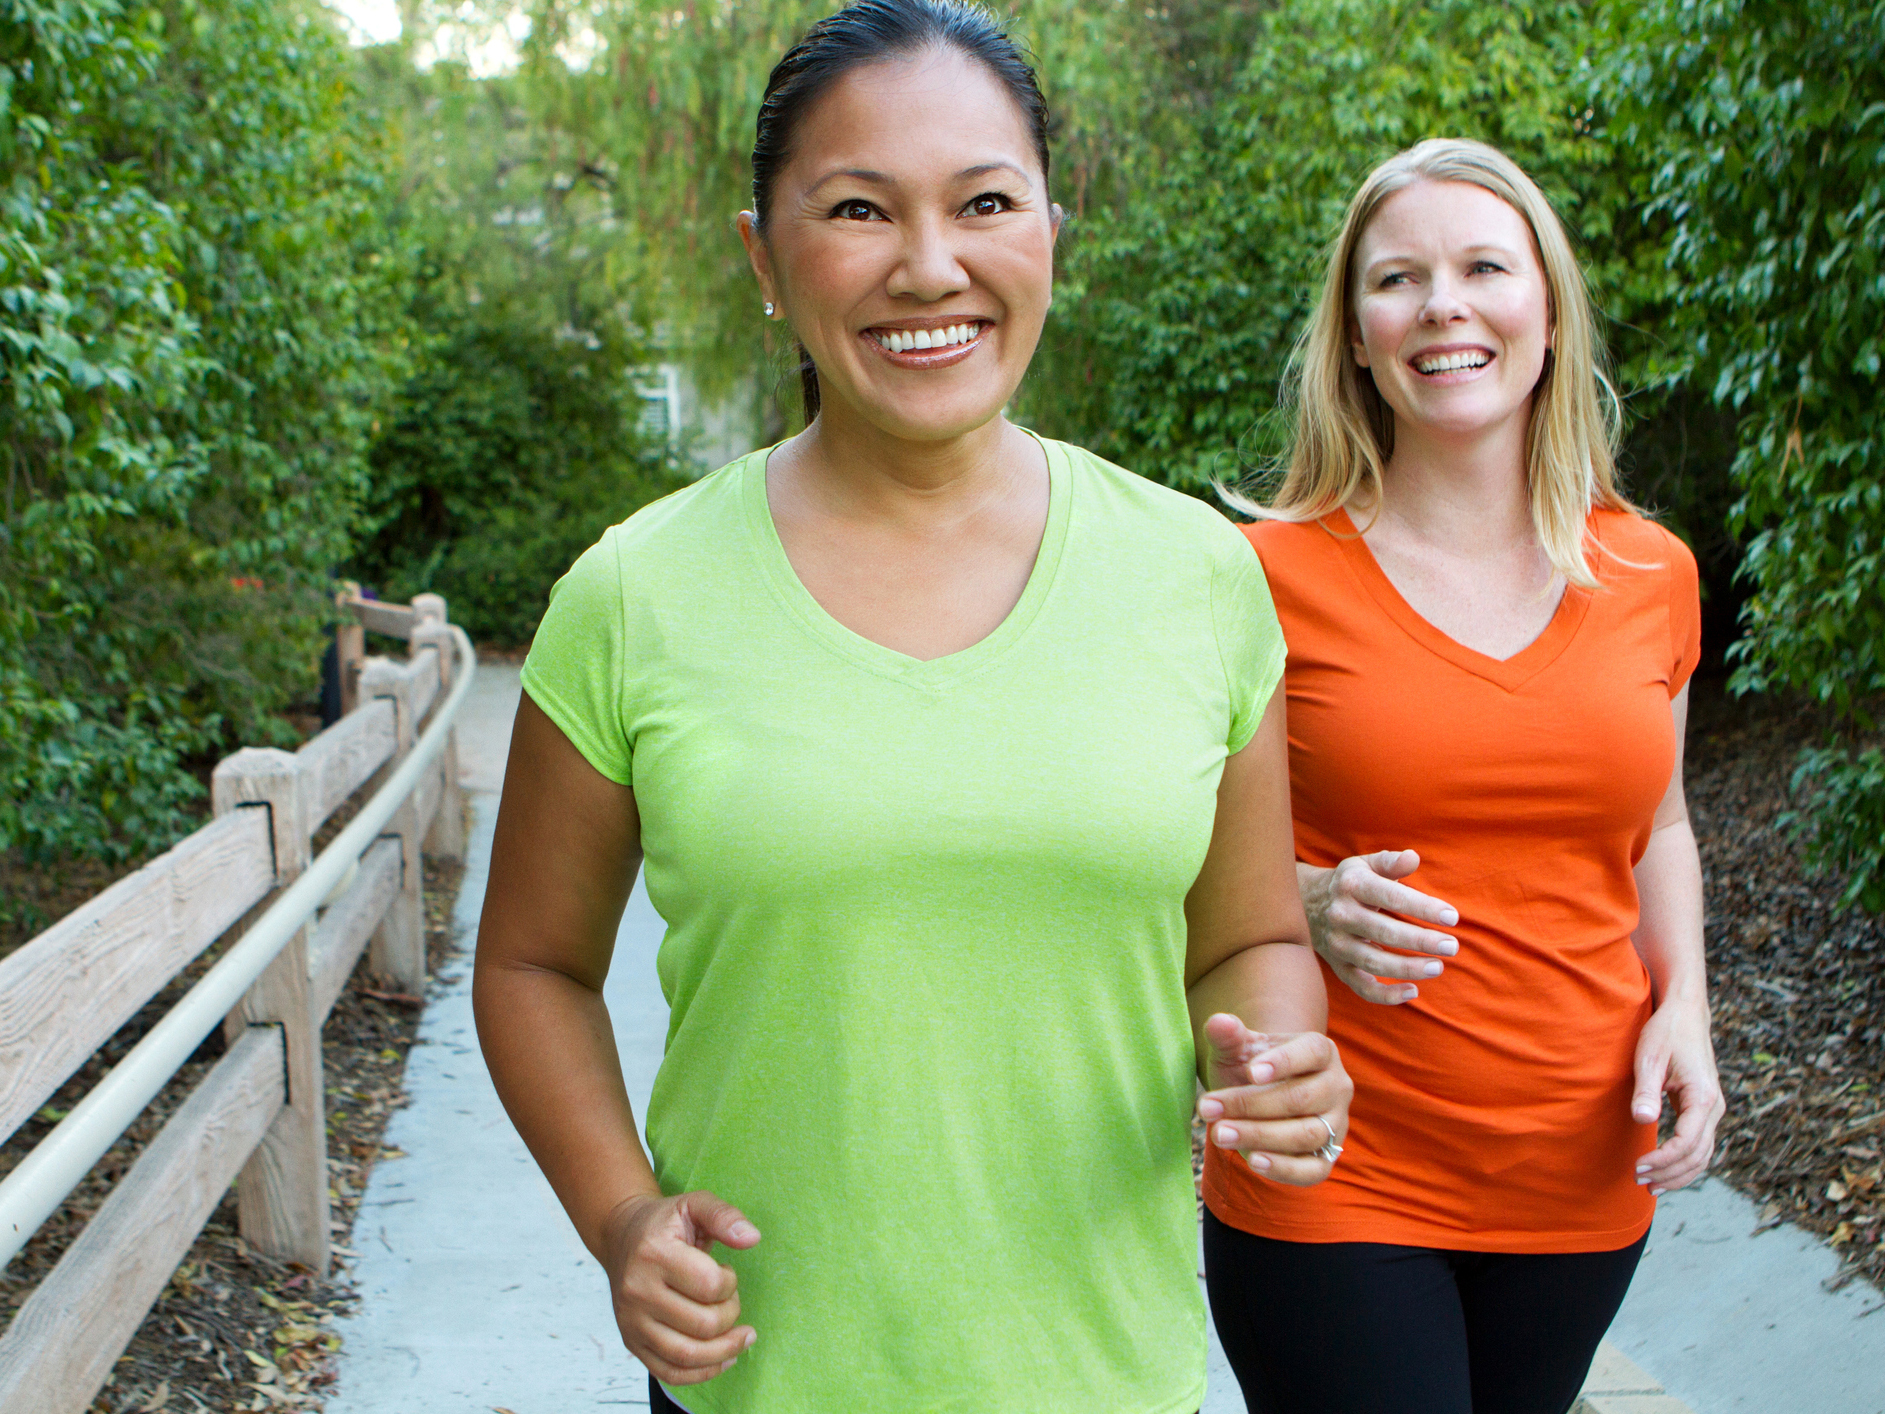 How much you have to walk each week to lose weight